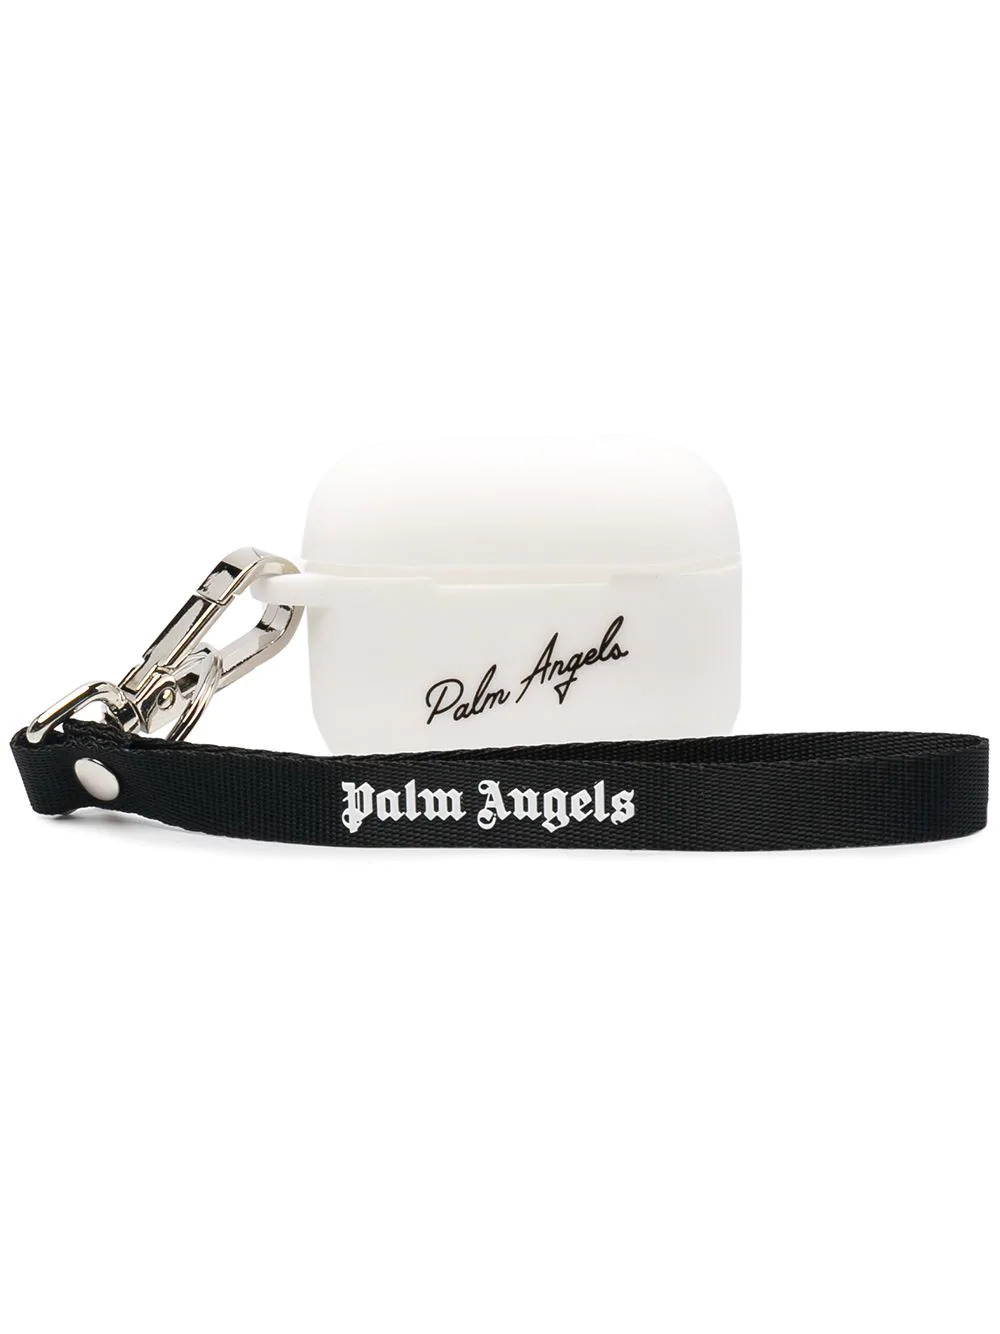 PALM ANGELS White And Black Miami Logo Airpods Pro Case